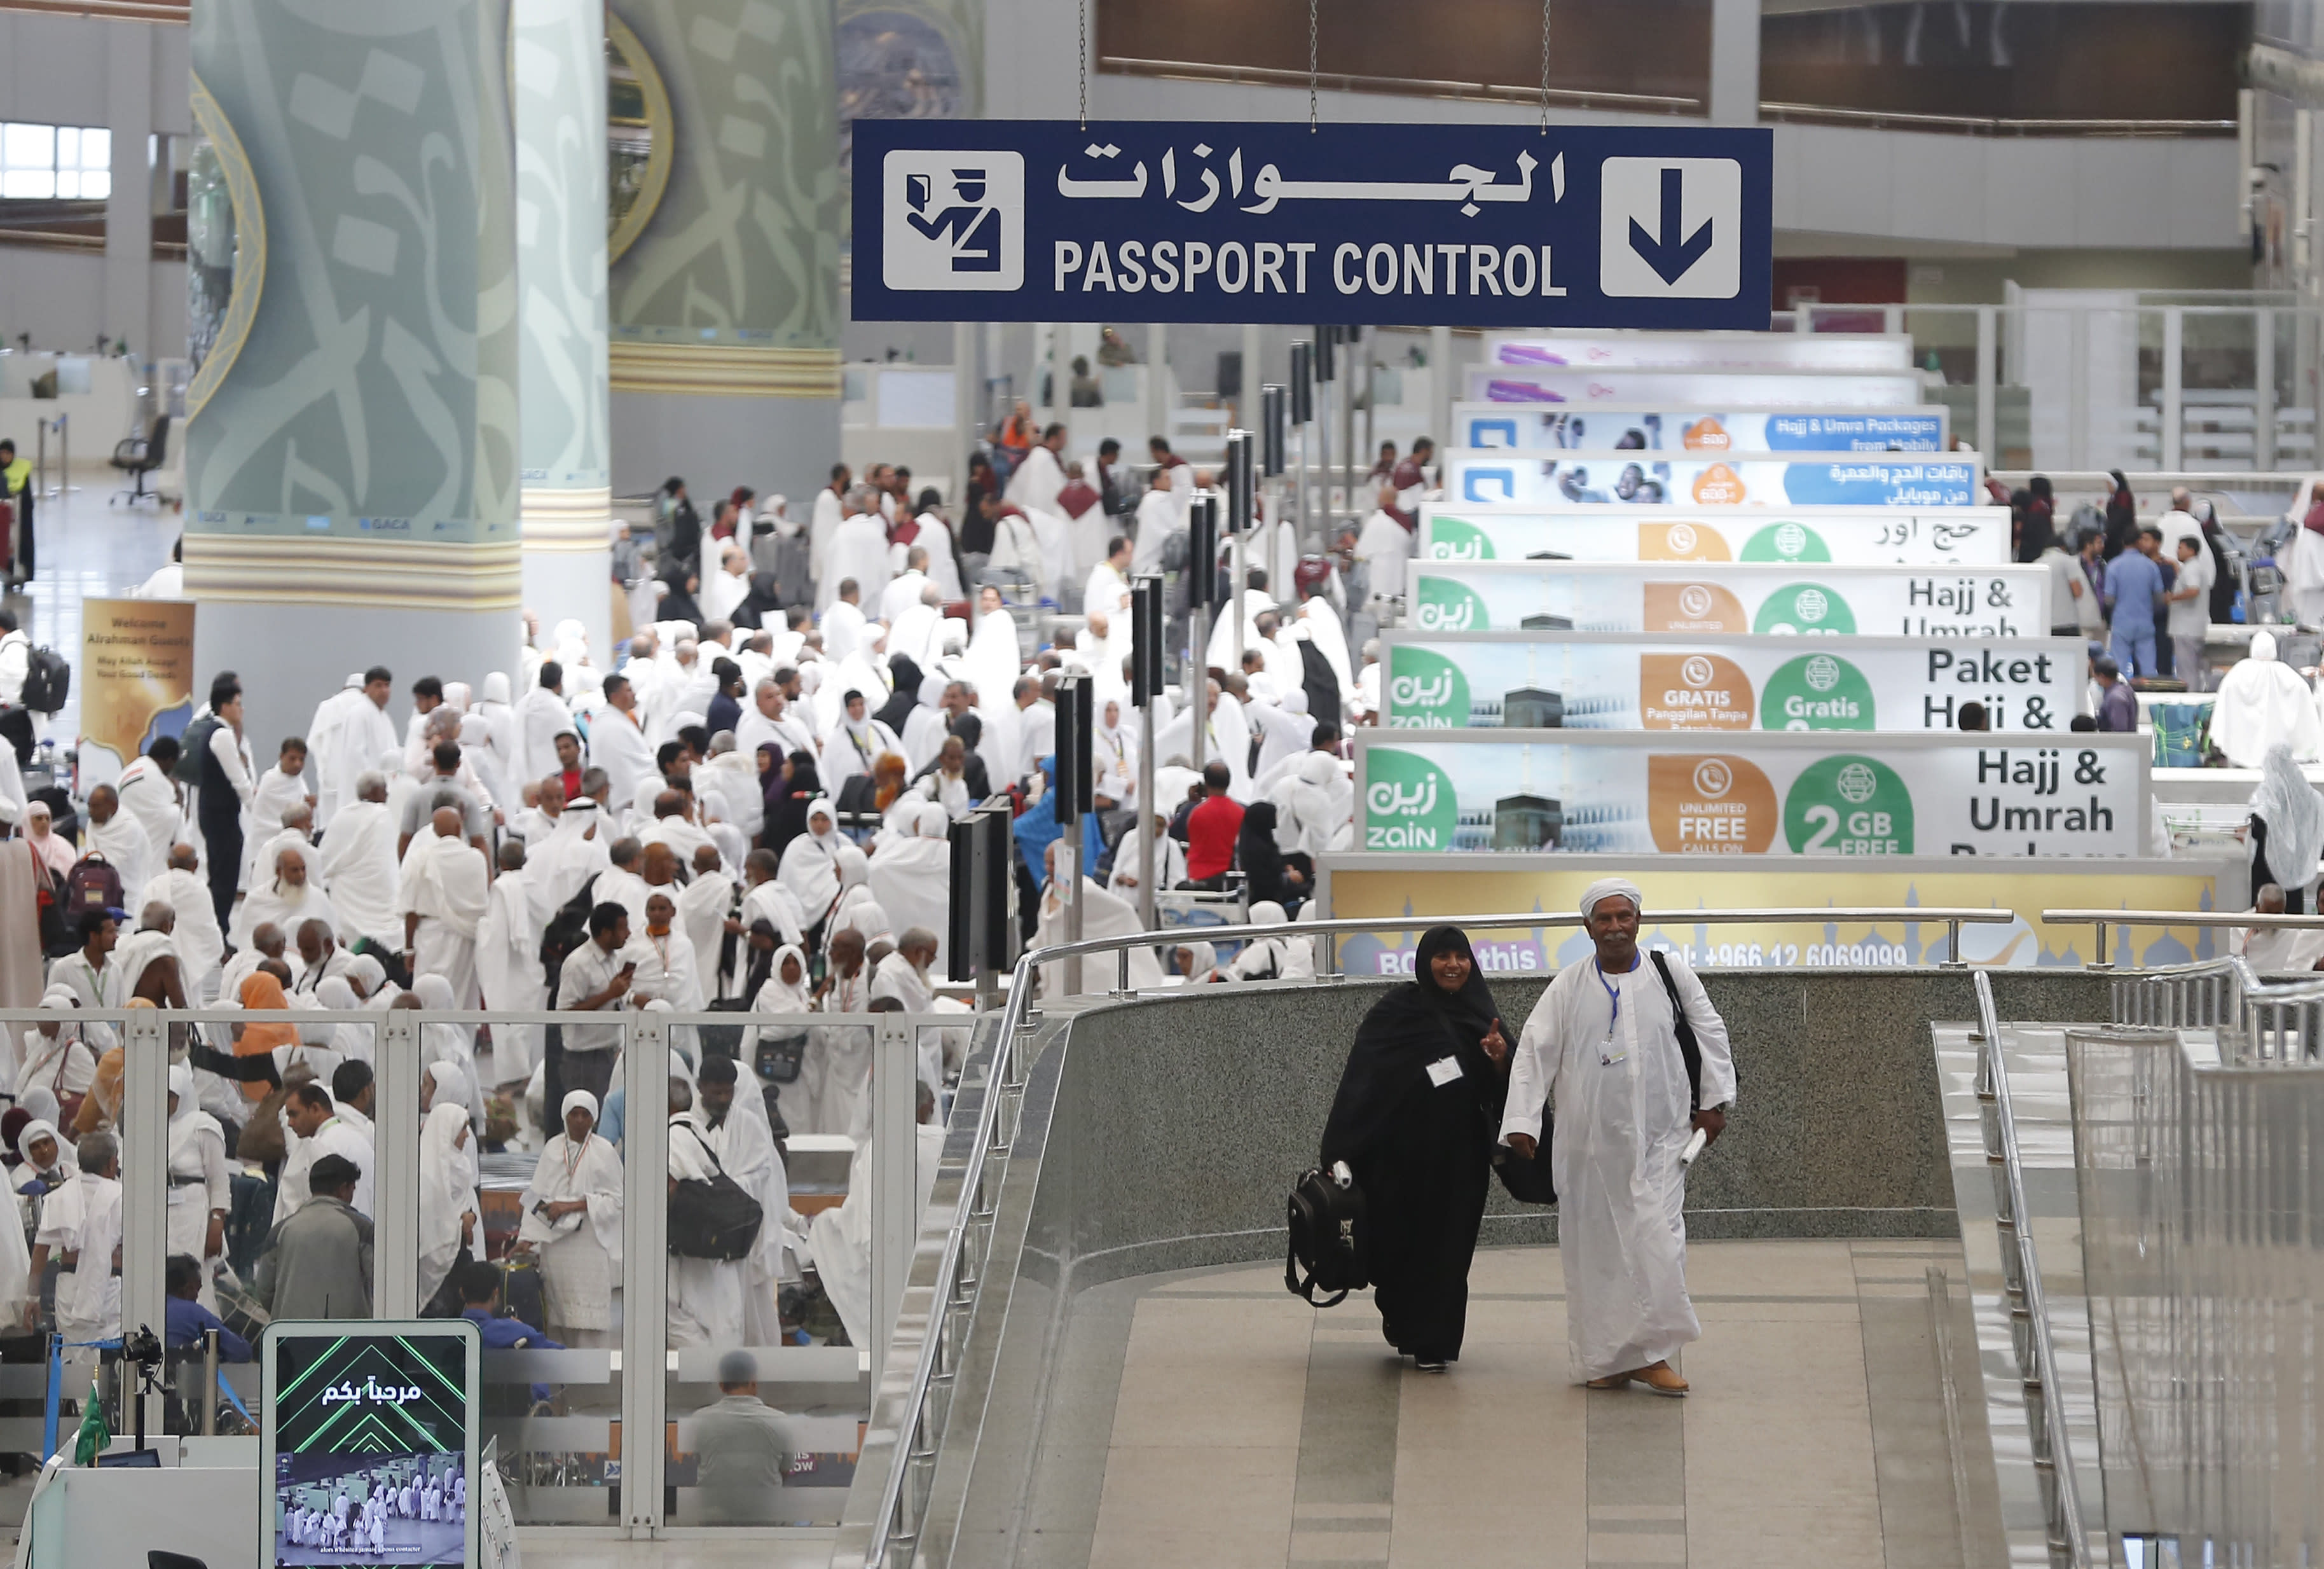 FILE - In this Saturday, Aug. 3, 2019 file photo, pilgrims arrive at the Hajj Terminal at Jiddah airport, Saudi Arabia. Over 2 million Muslims from around the world are beginning the five-day hajj pilgrimage on Friday. They will circle Islam's most sacred site, the cube-shaped Kaaba in Mecca, and take part in a series of rituals intended to bring about greater humility and unity among Muslims. (AP Photo/Amr Nabil, File)